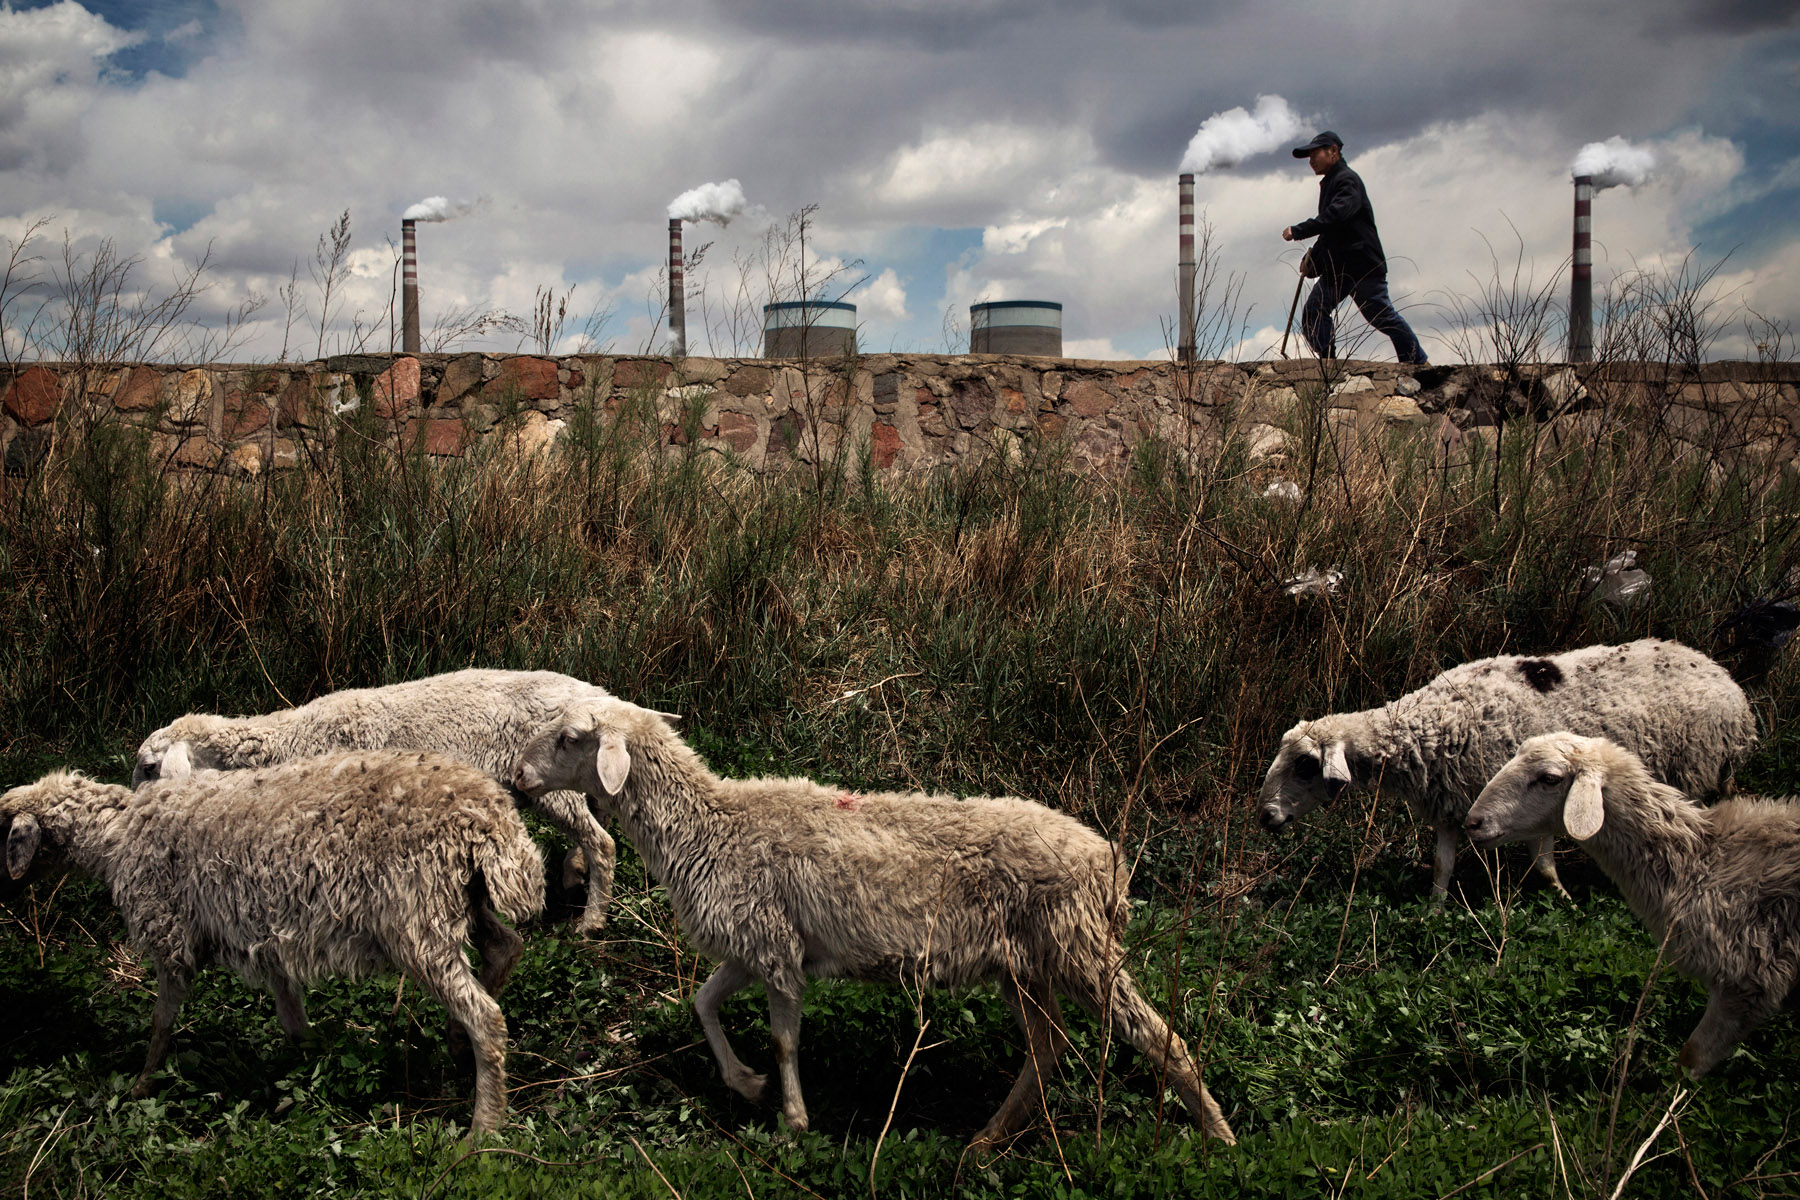 A shepherd drives his sheep